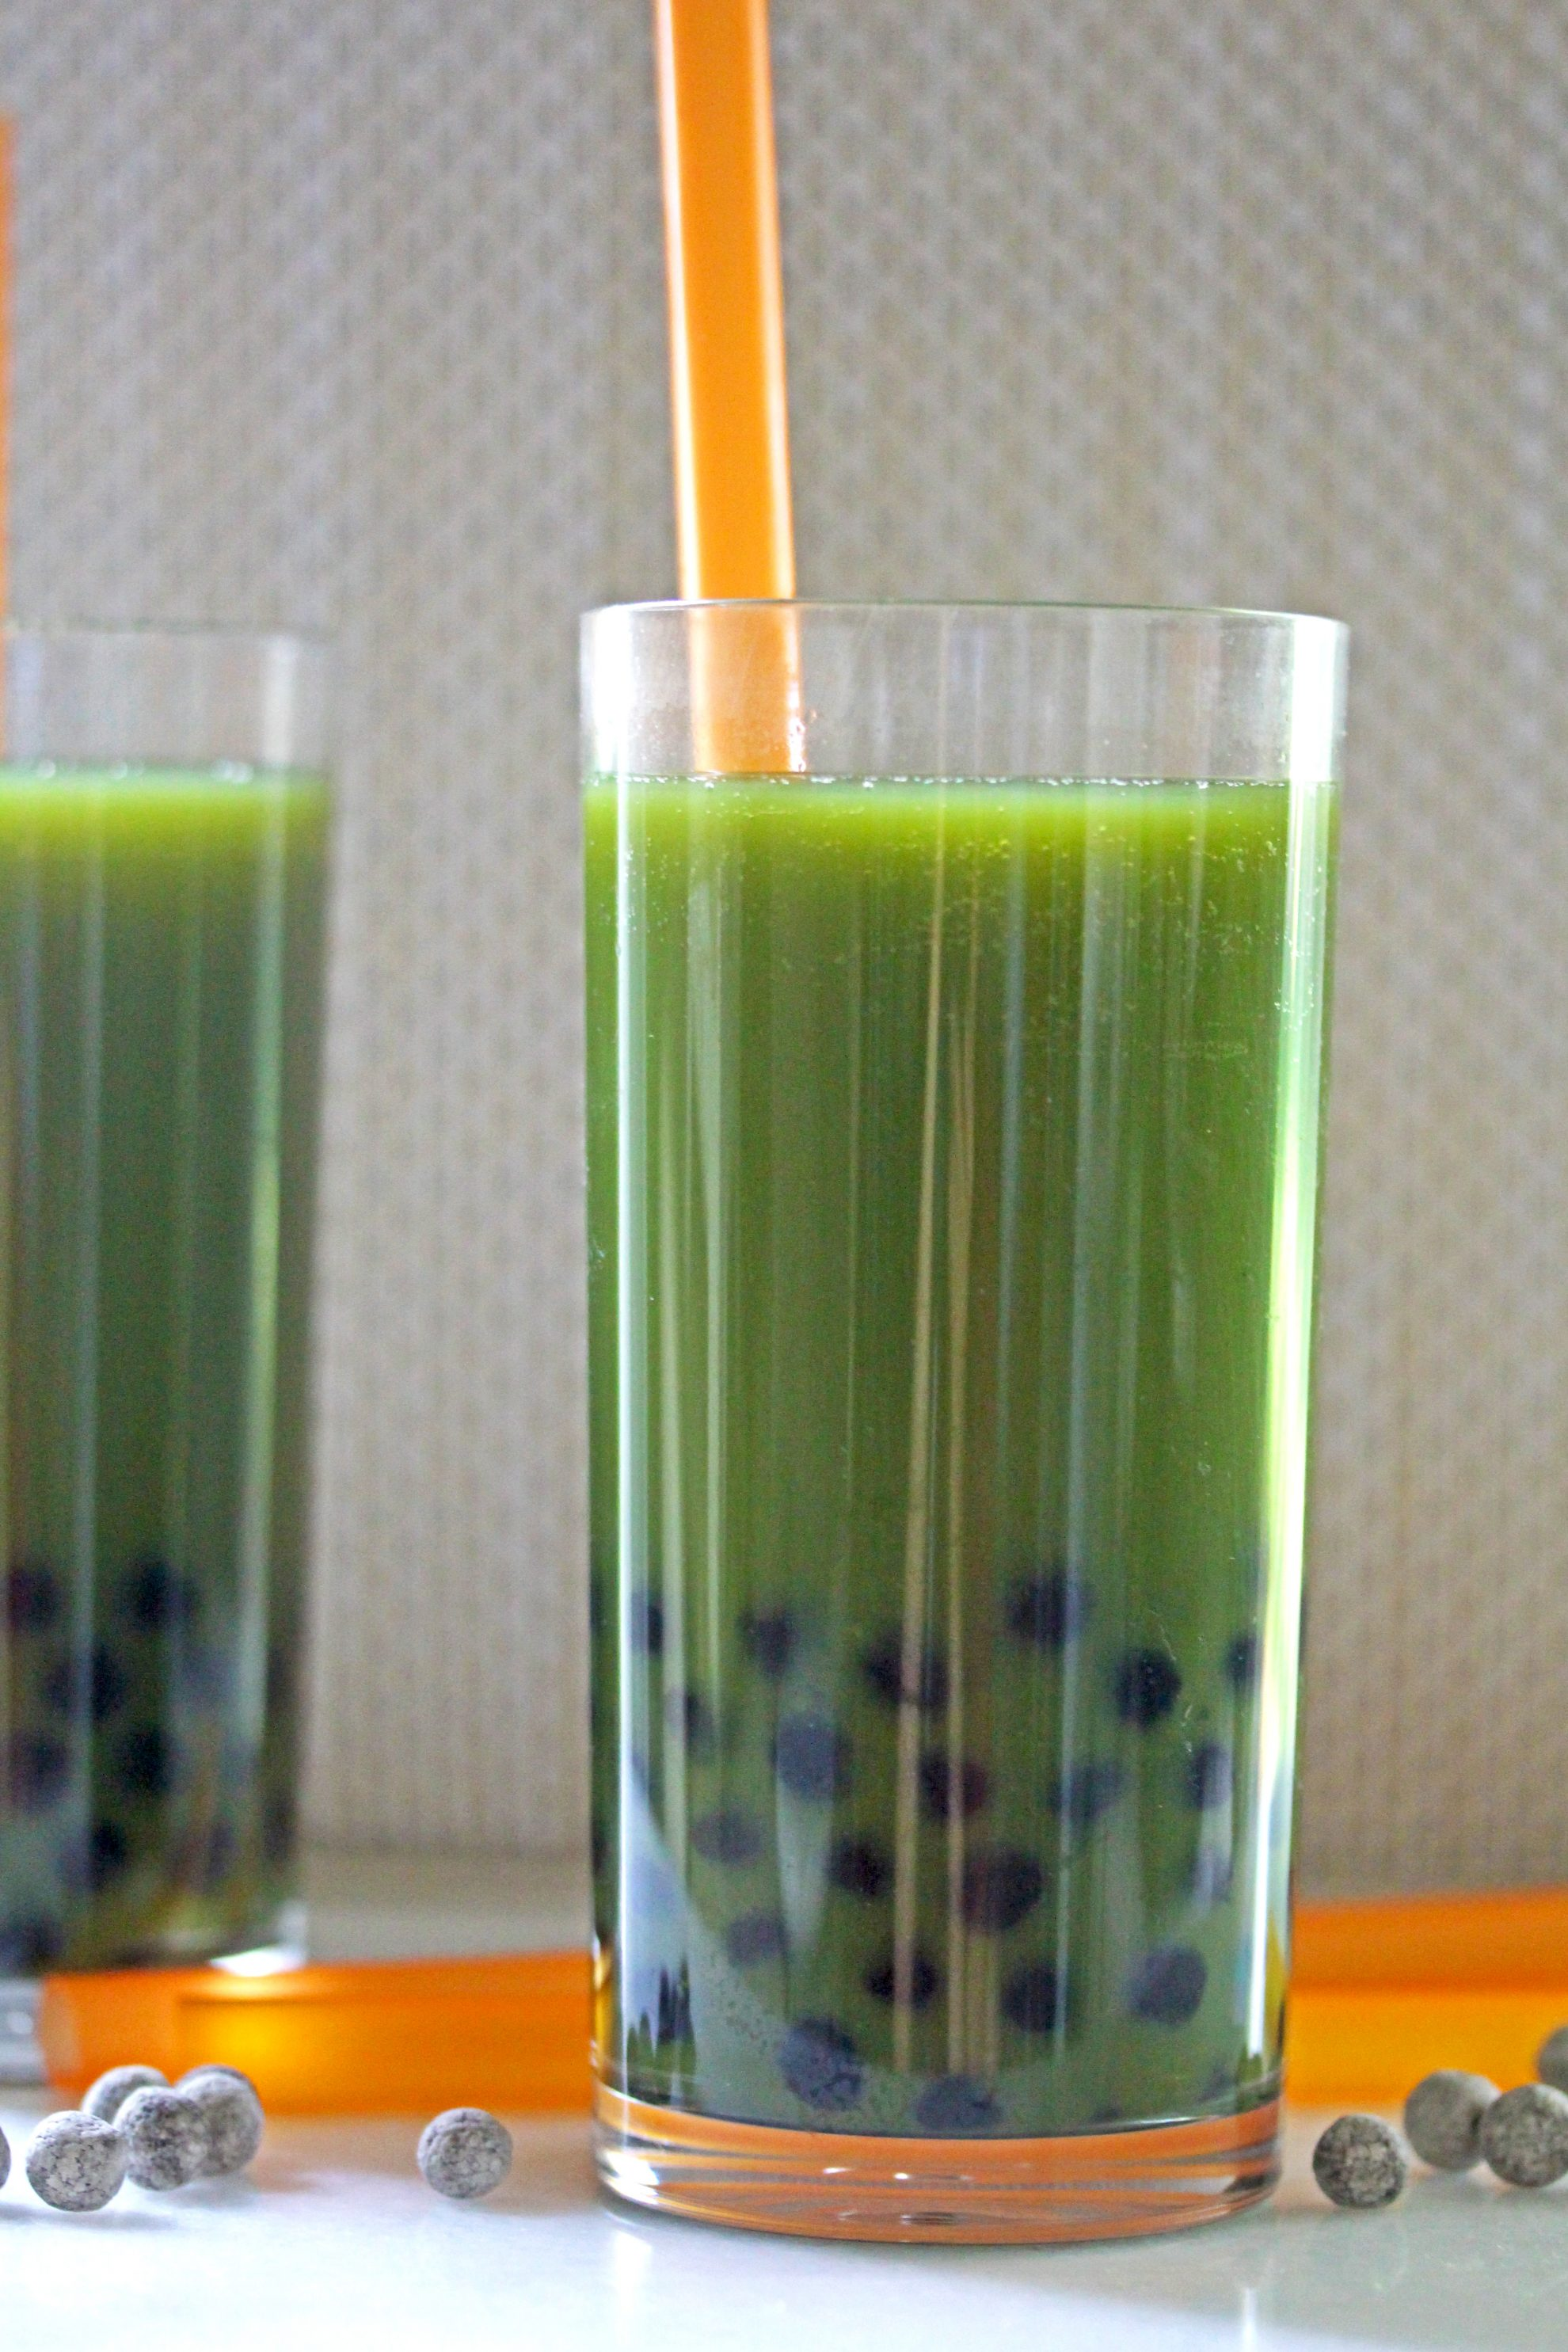 Green Juice Bubble Tea is a healthy bubble tea recipe that uses green juice and tapioca pearls